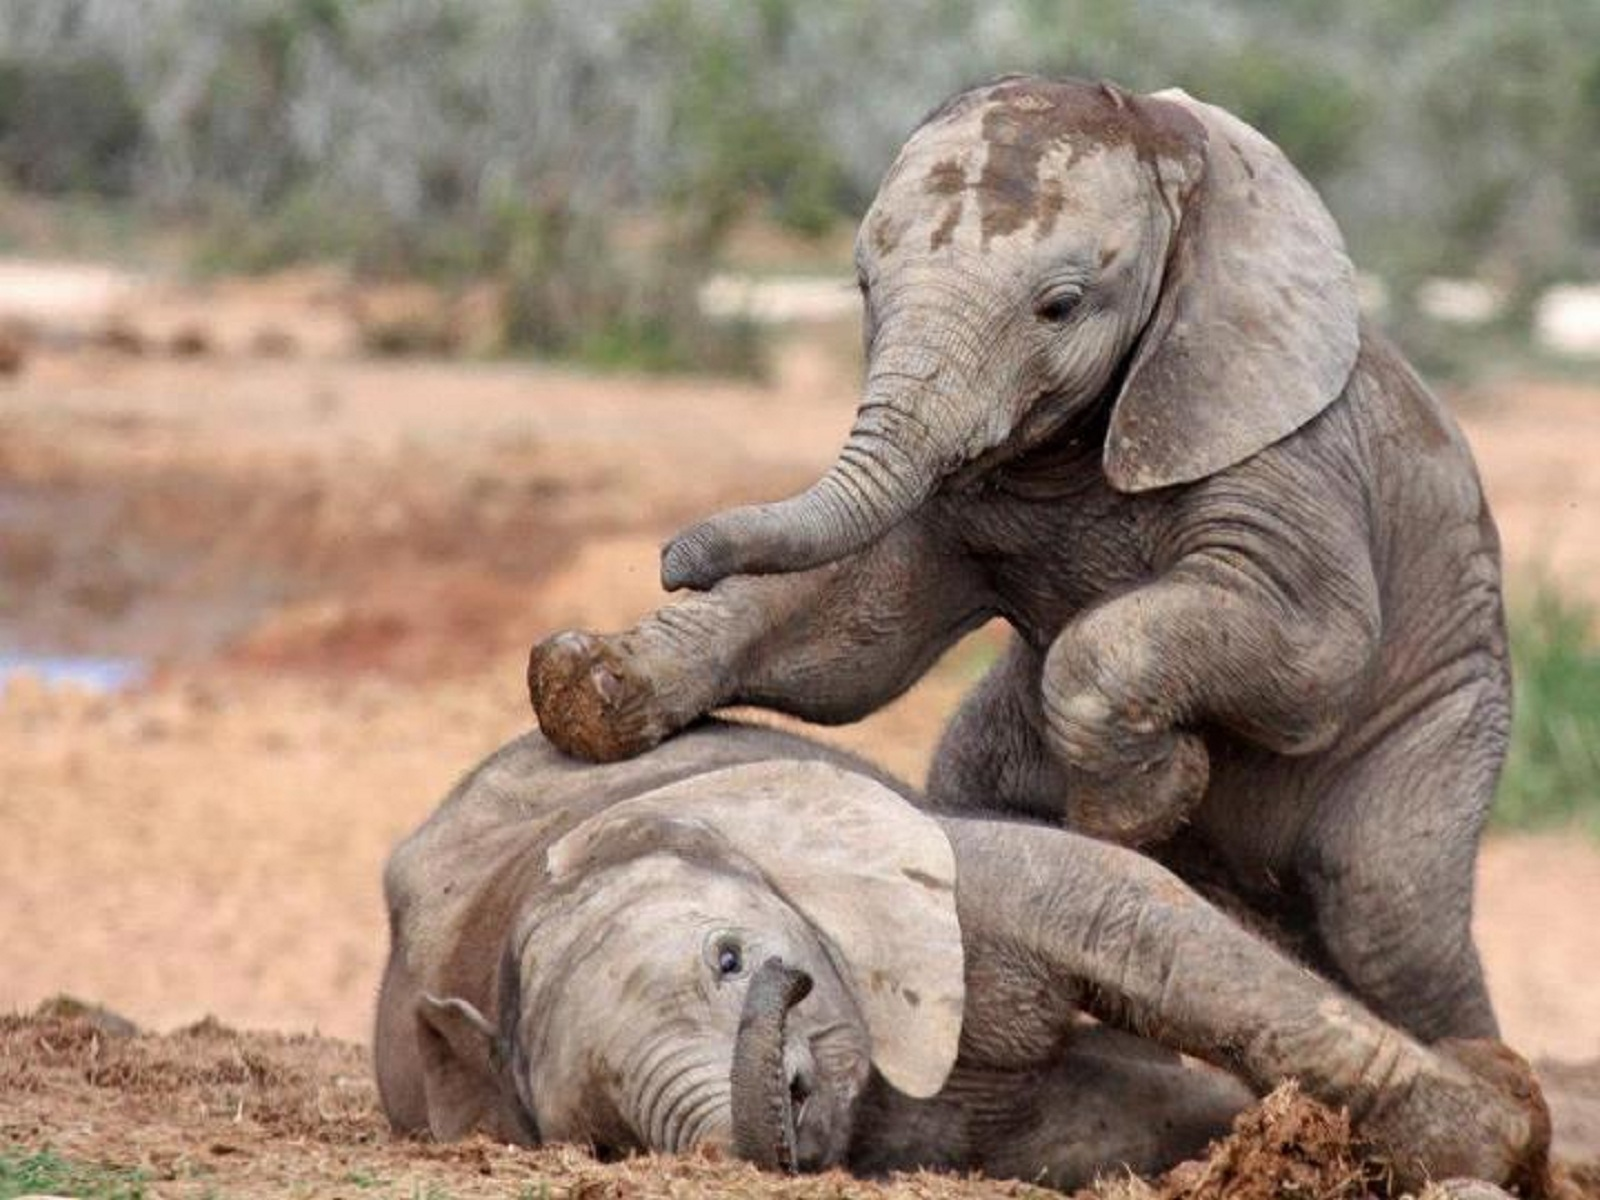 Cute Cry Baby Wallpaper Hd Baby Elephant Wallpaper Pixelstalk Net